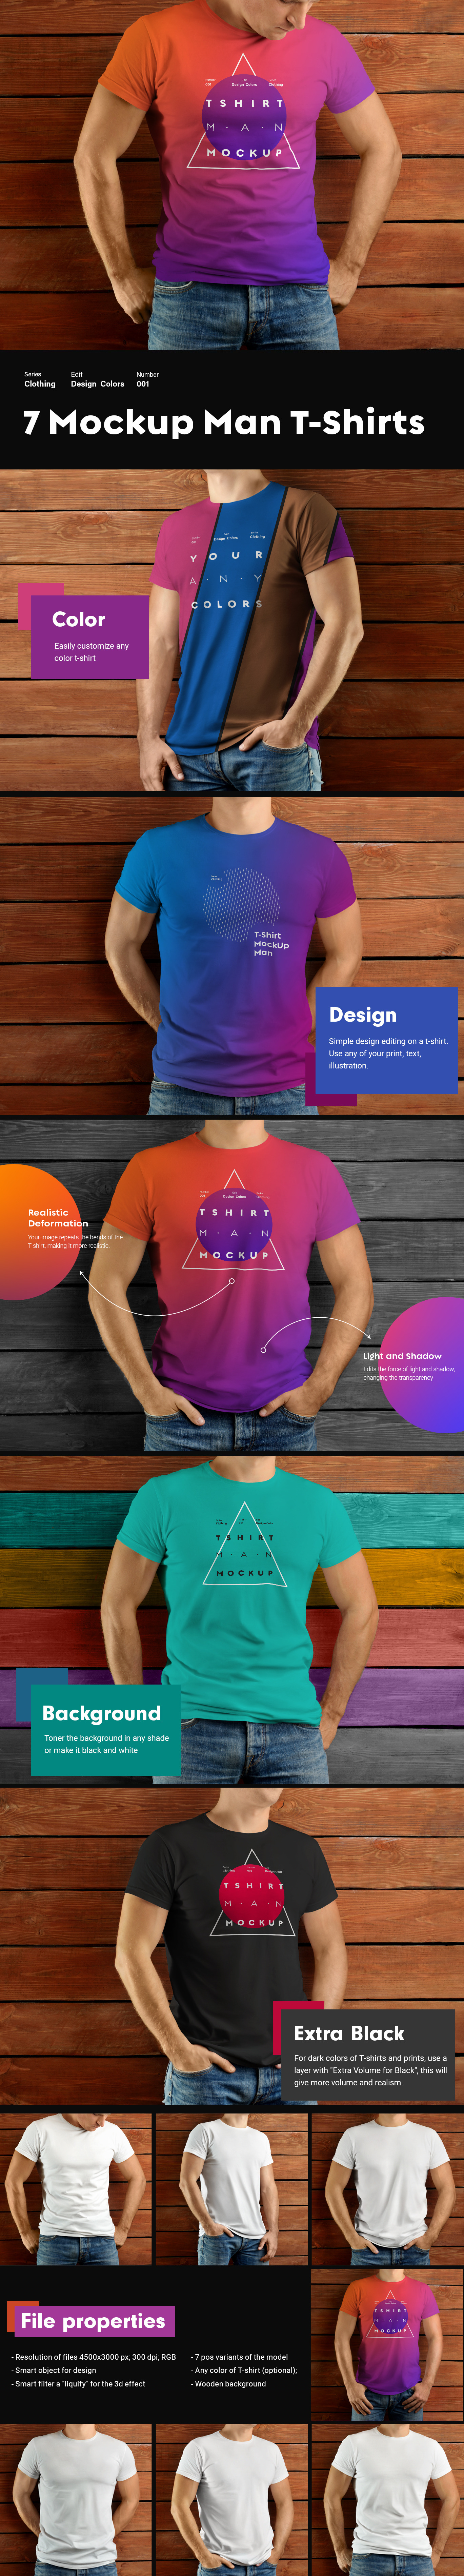 7 MockUps Man T-shirts on Wooden Background